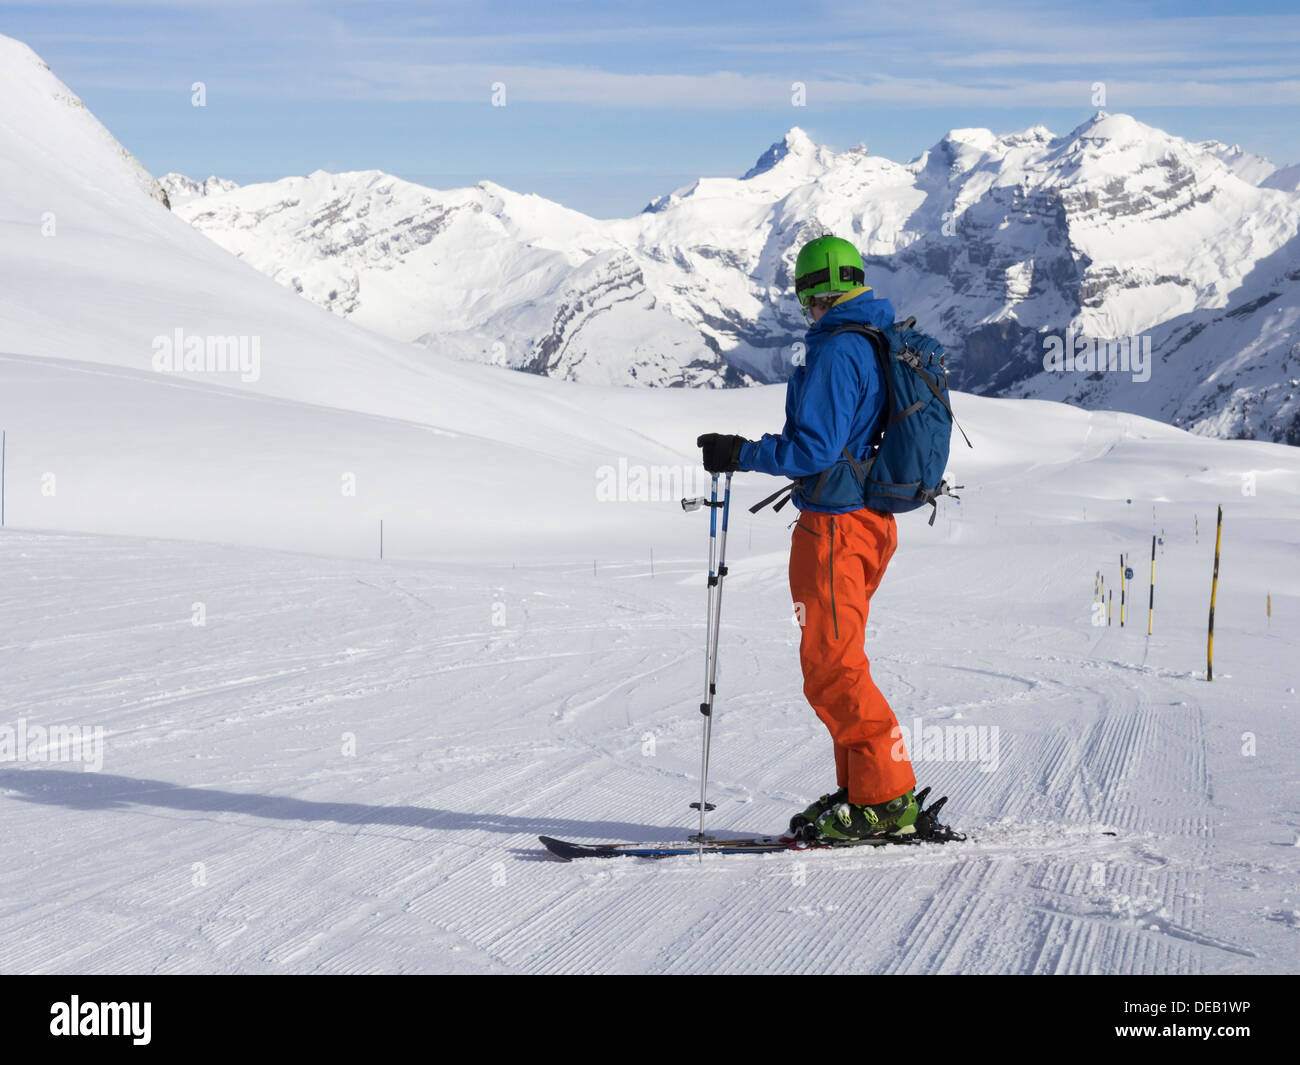 Skier skiing on 14 km blue piste Les Cascades in Grand Massif ski area in French Alps. Flaine, Haute Savoie, Rhone-Alpes, France - Stock Image